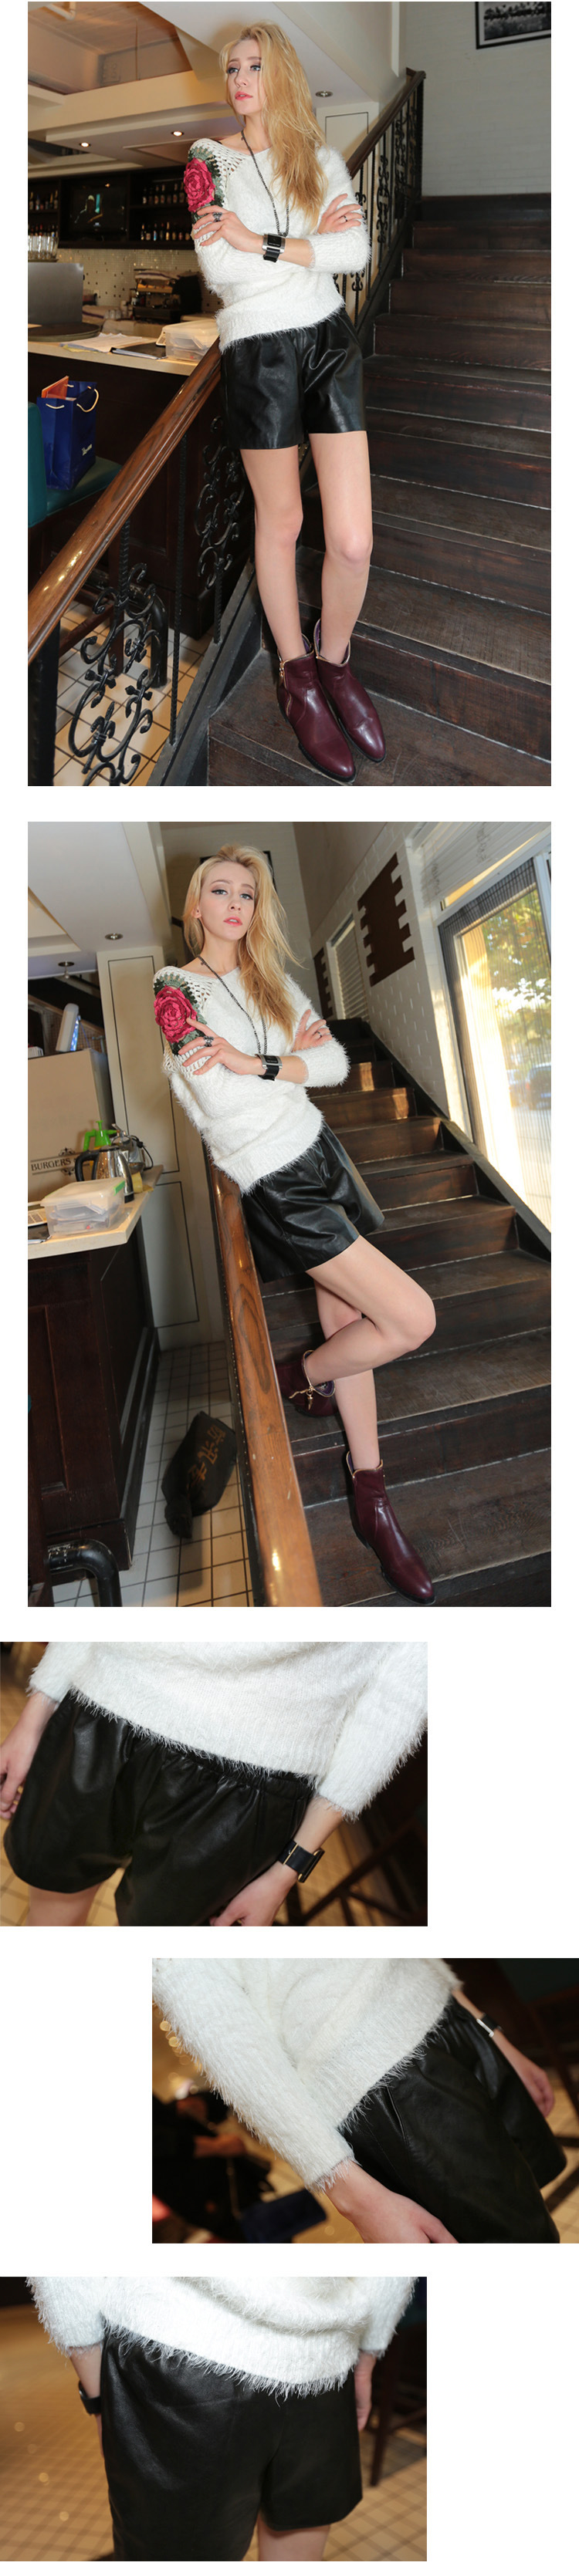 Women's Real Leather Short Pants 020 Details 4